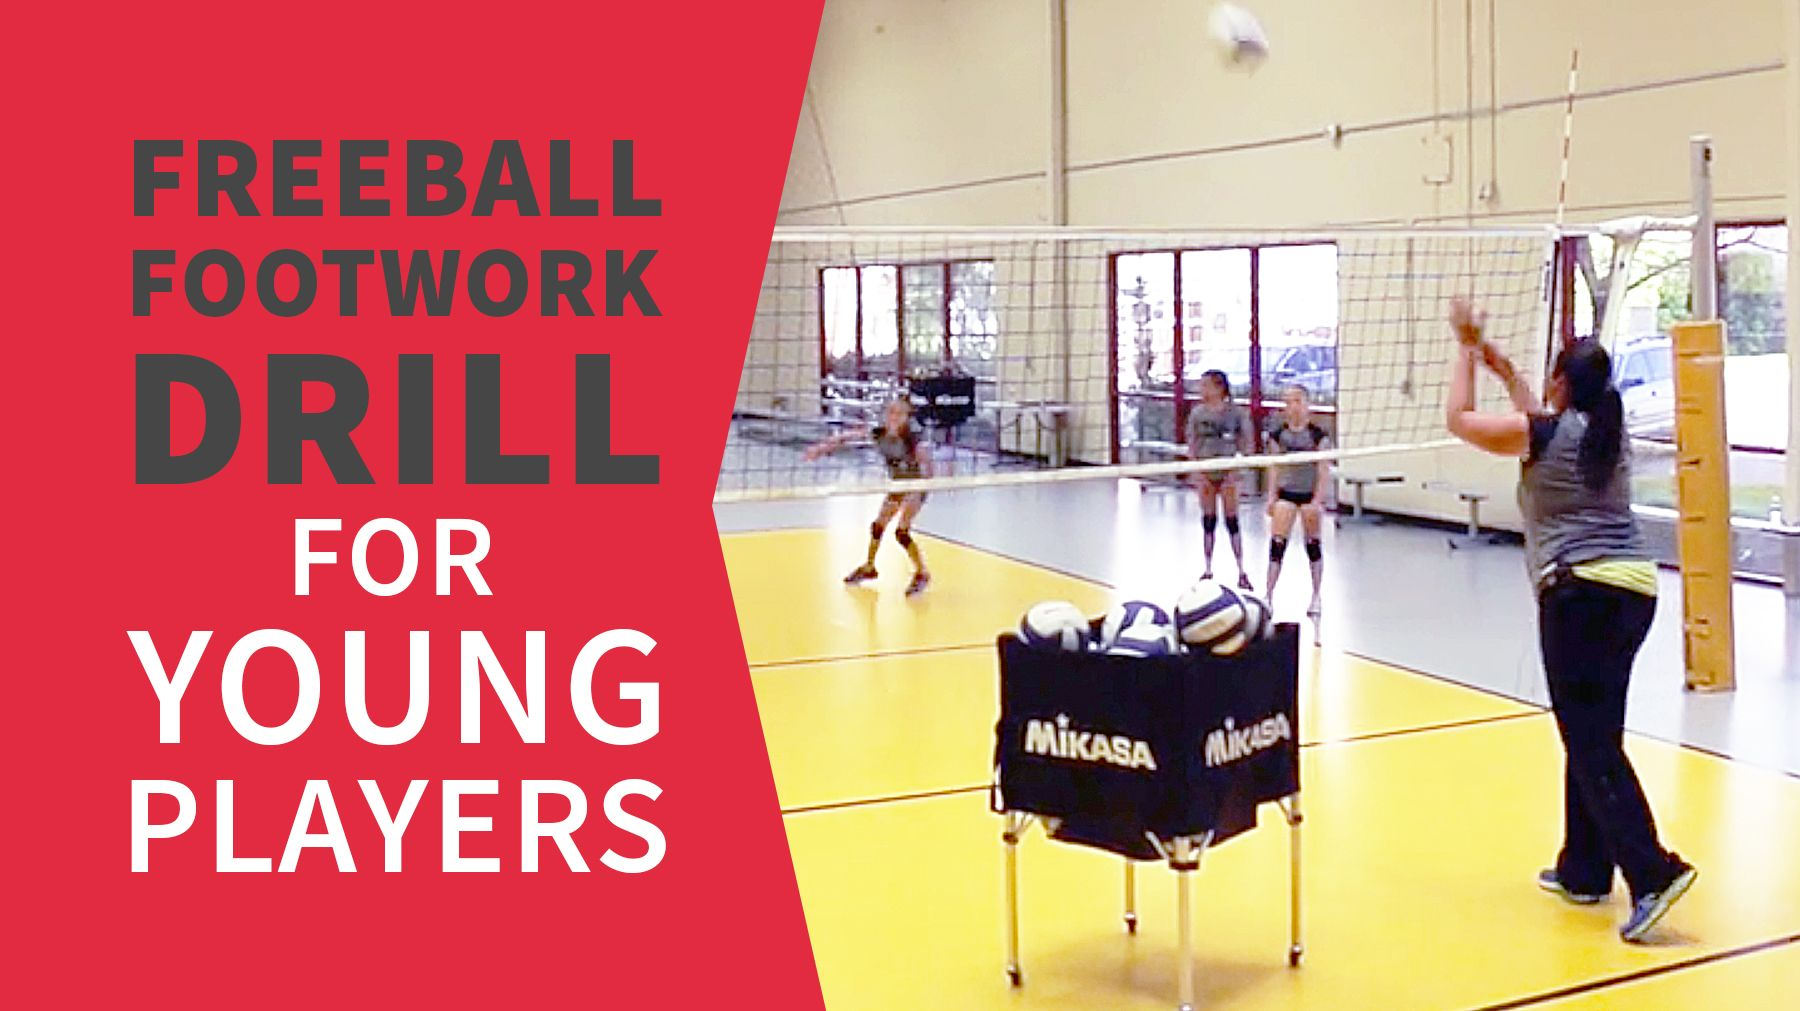 Freeball Footwork Drill For Young Players The Art Of Coaching Volleyball Coaching Volleyball Volleyball Drills For Beginners Volleyball Training